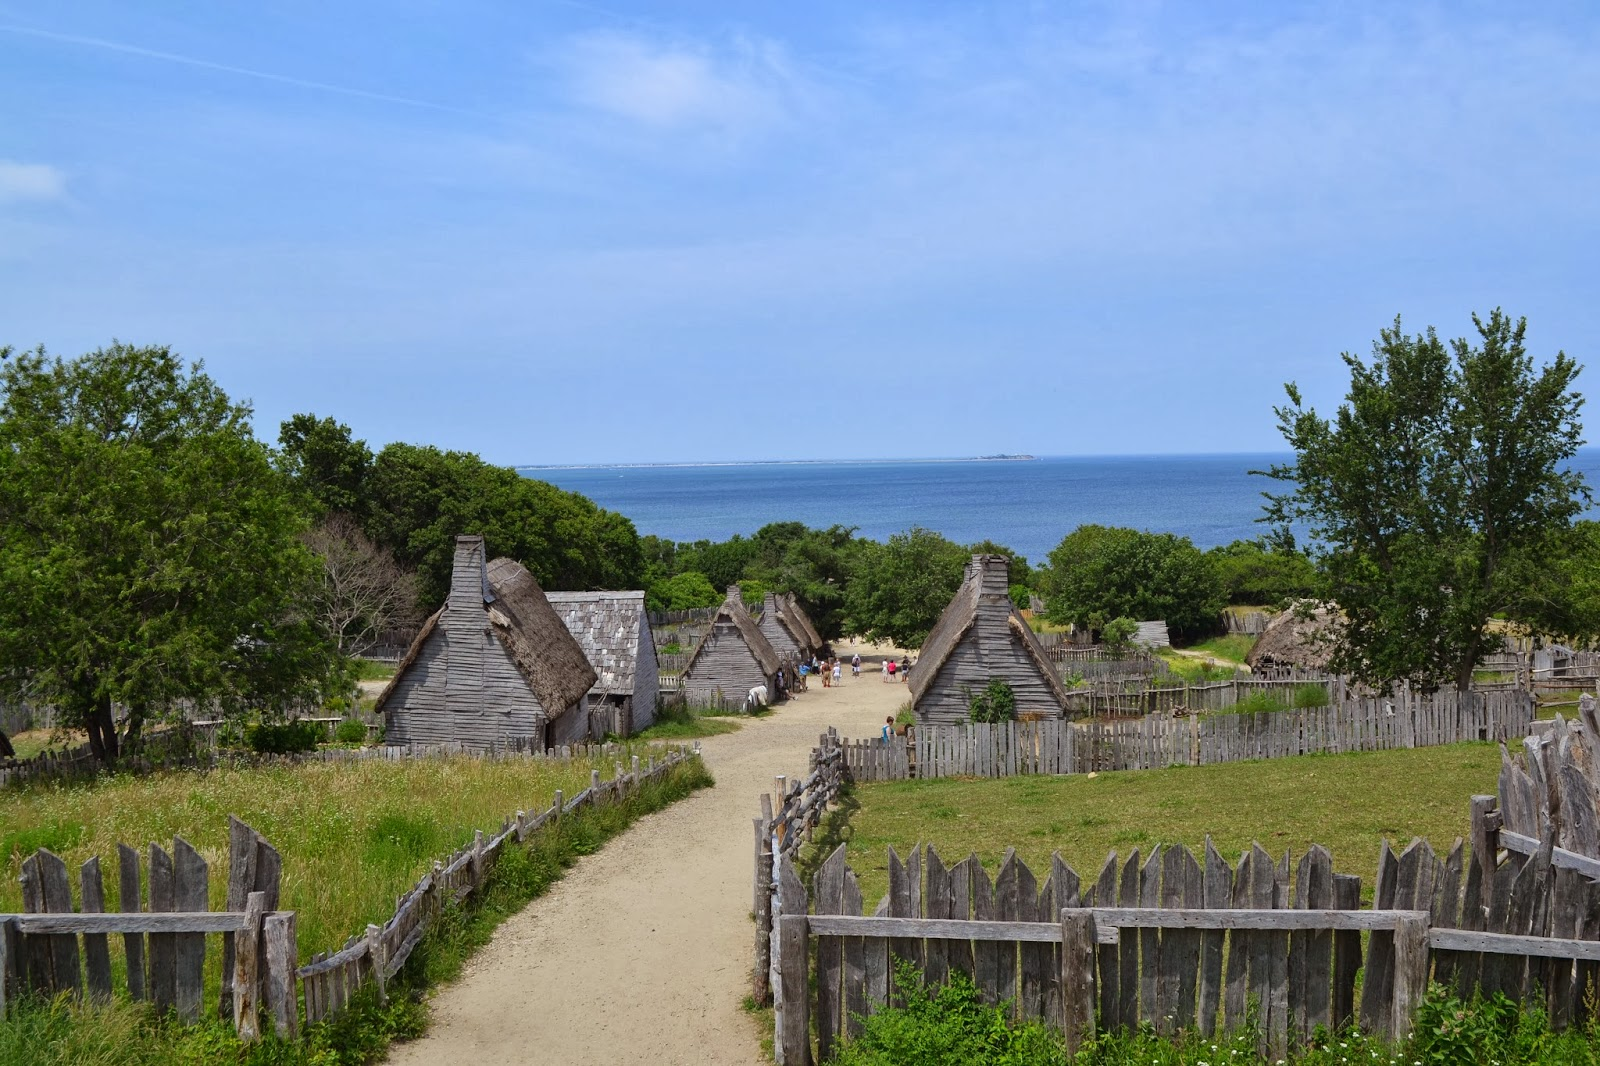 Hoosier Happenings: Thanksgiving Photo Essay from Plimoth